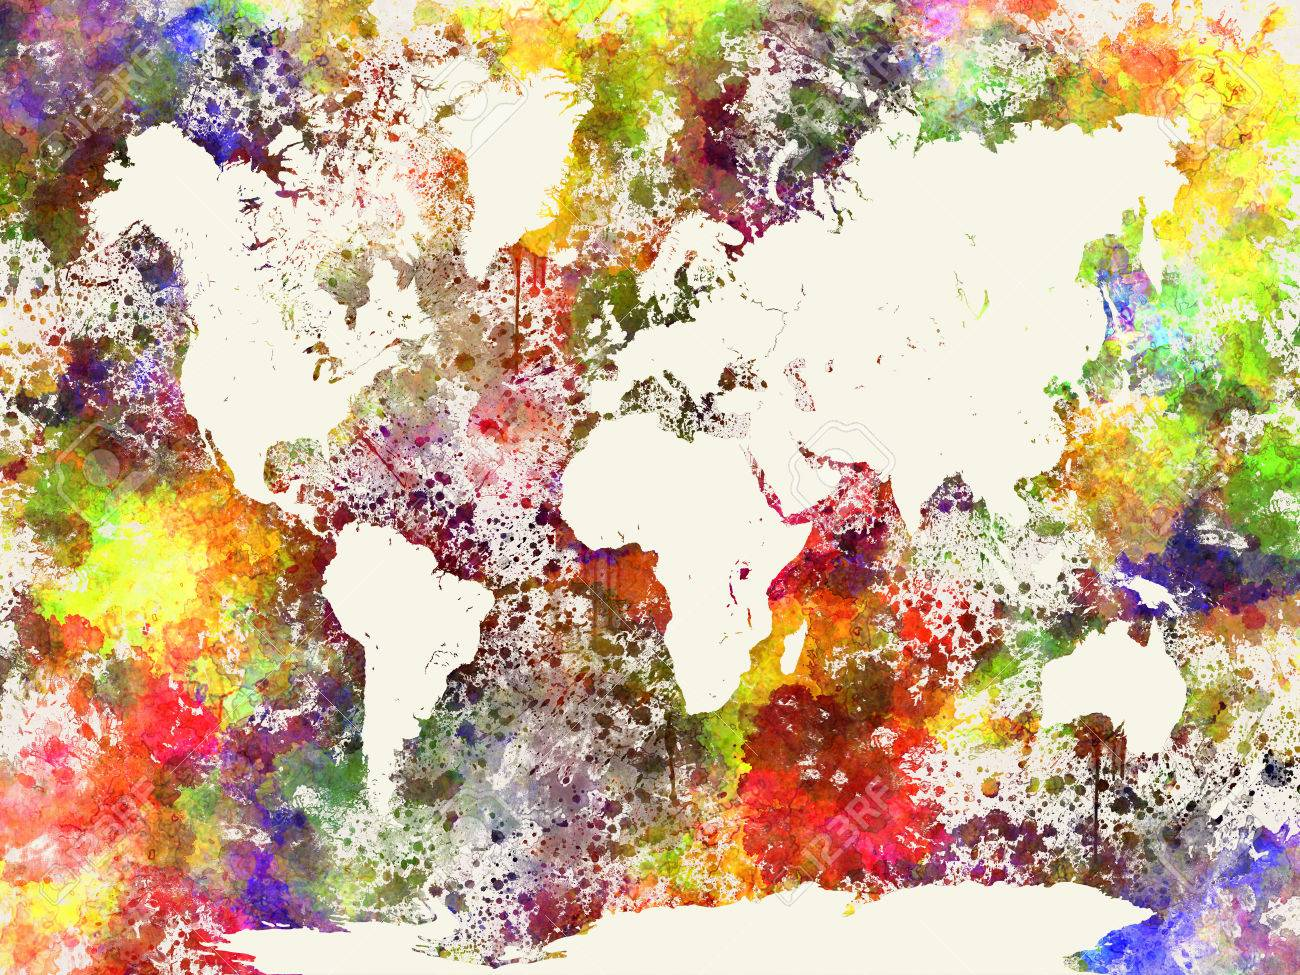 World map in watercolor painting abstract splatters stock photo world map in watercolor painting abstract splatters stock photo 41960190 gumiabroncs Image collections